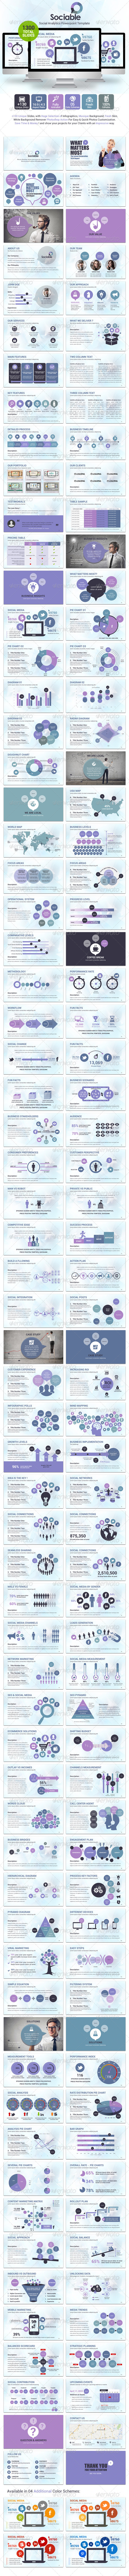 GraphicRiver Sociable Powerpoint Template 7415190